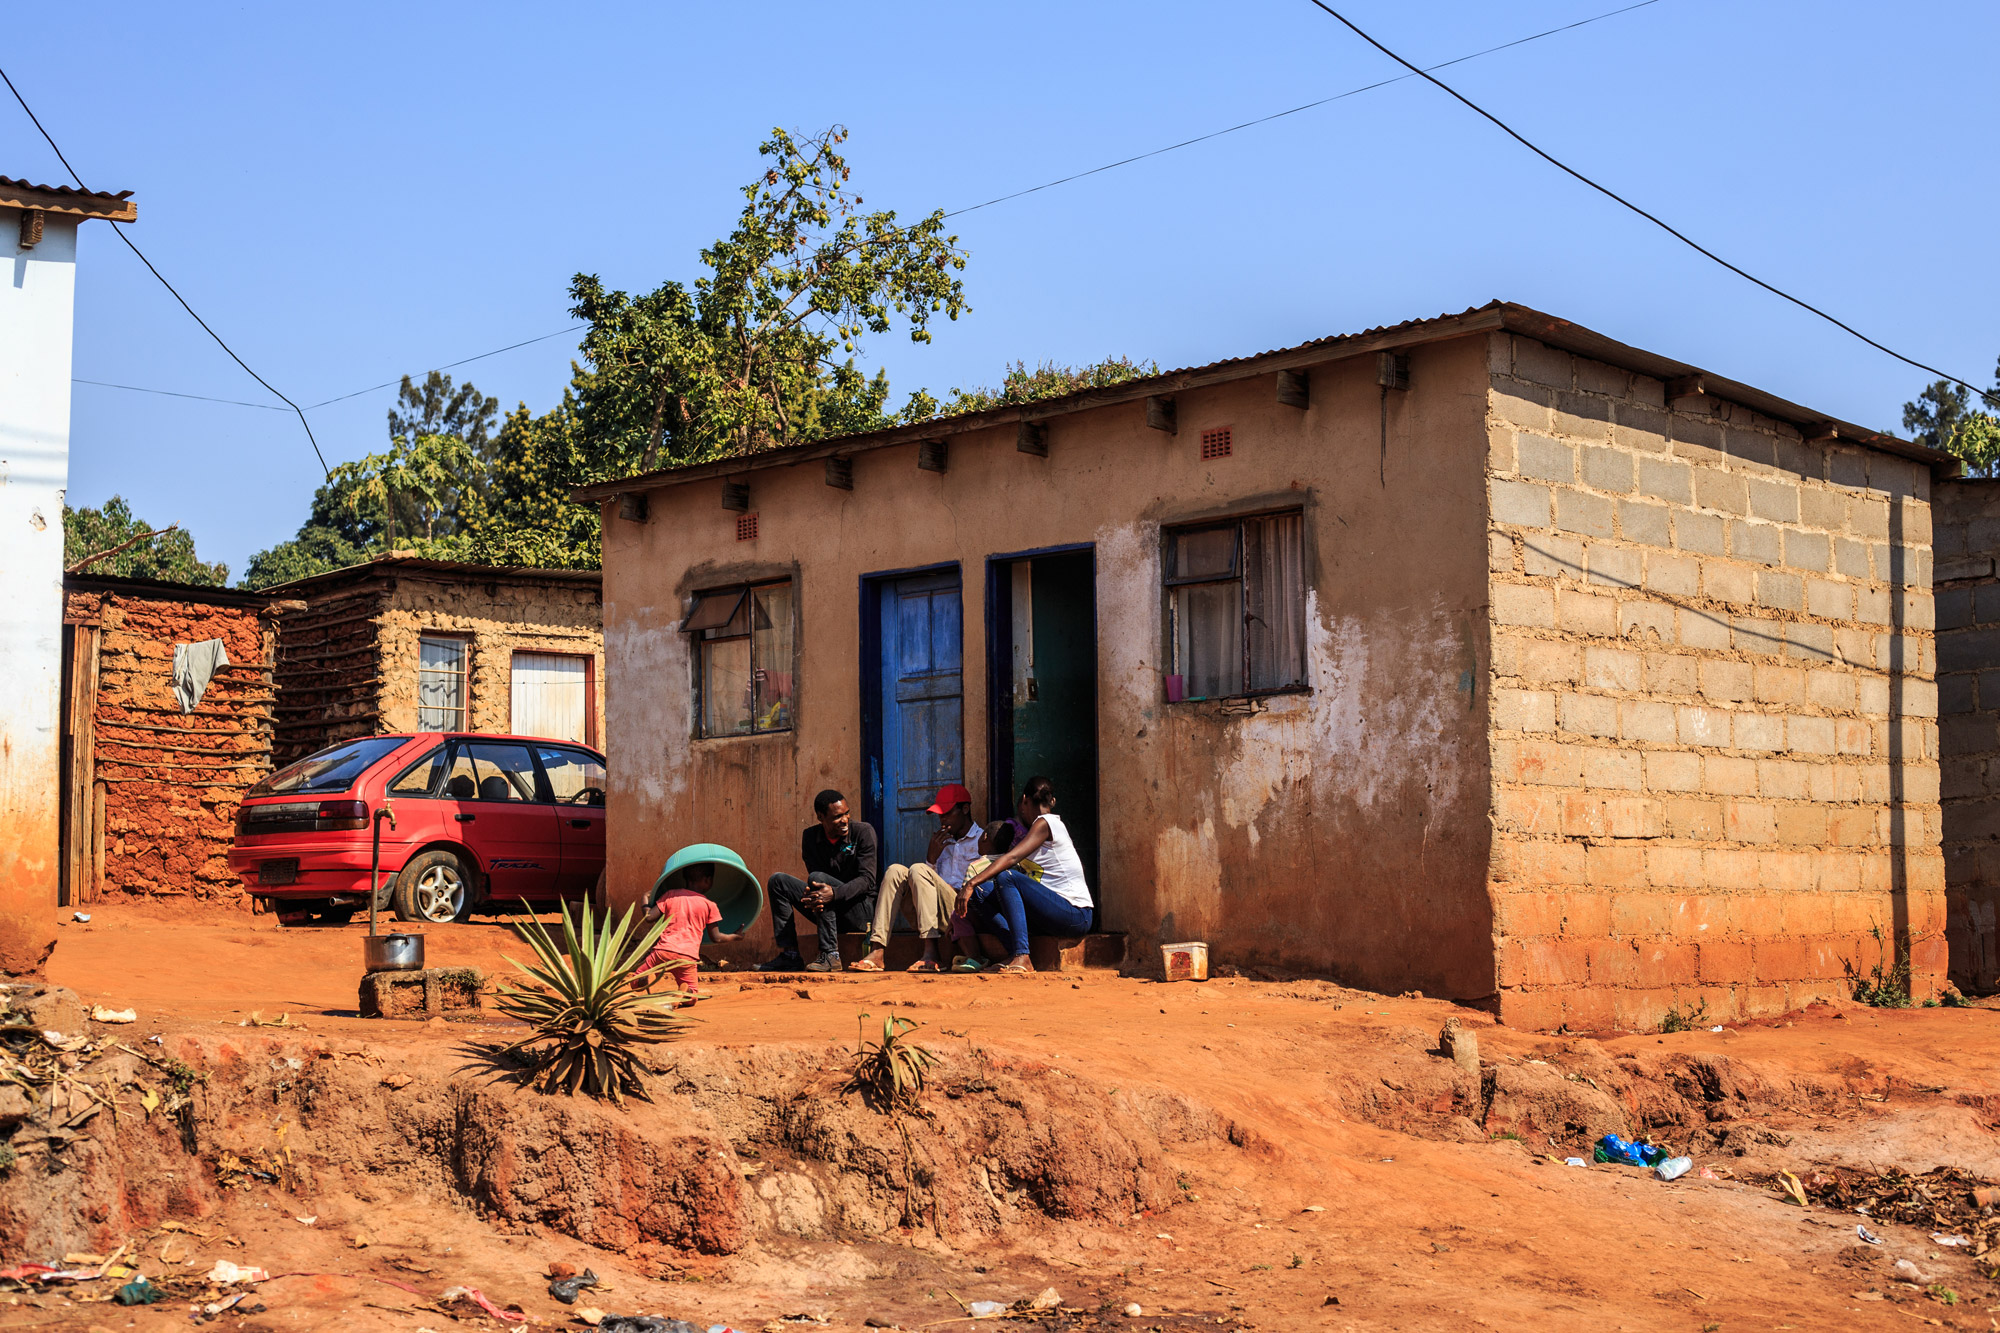 A typical residence in Swaziland.